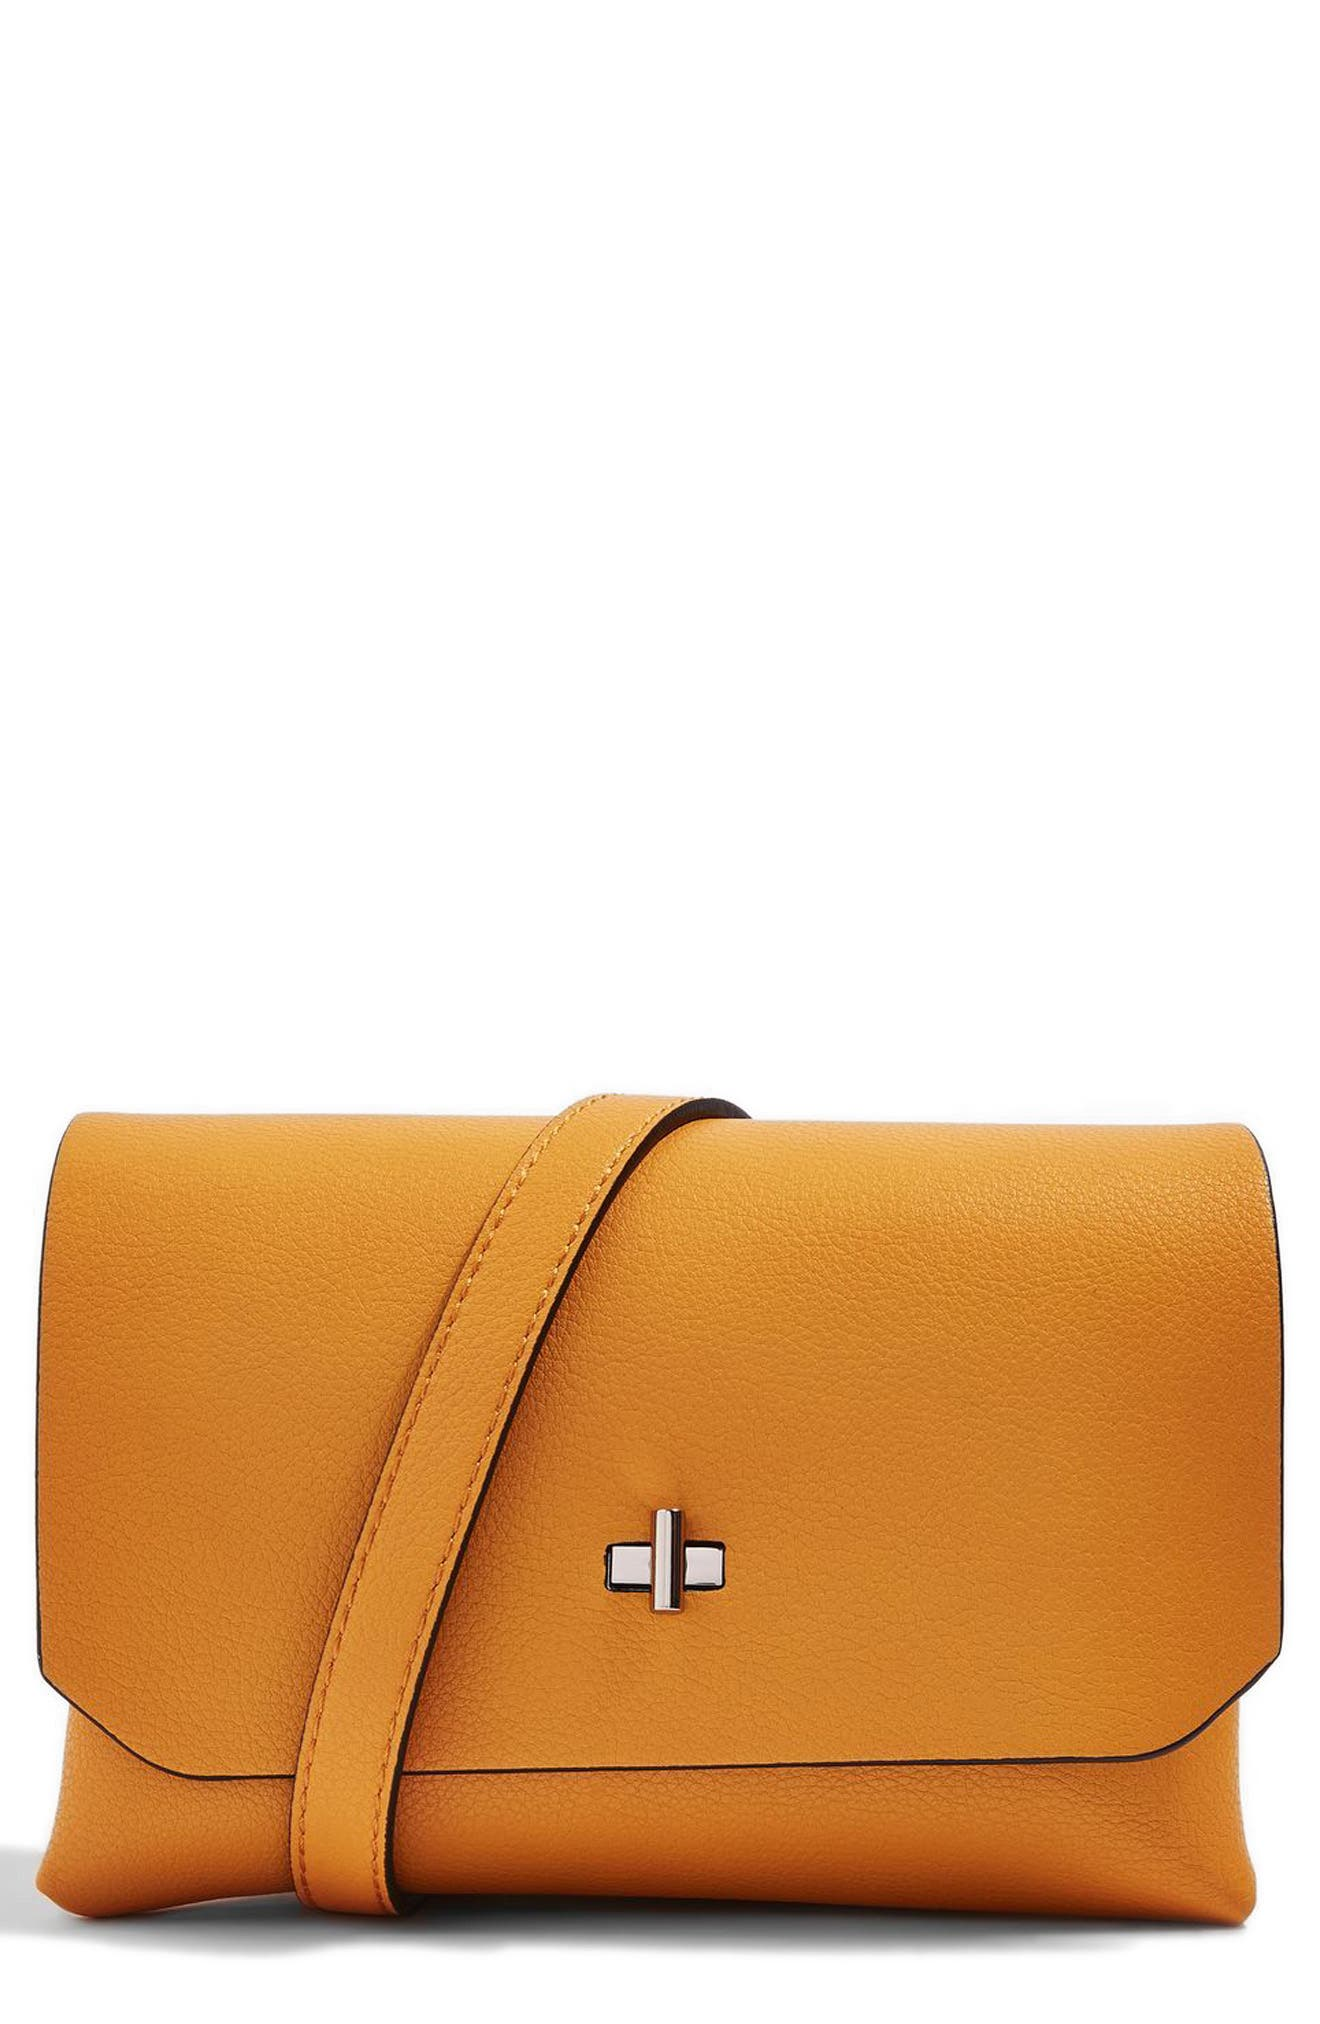 Topshop Otley Faux Leather Crossbody Bag